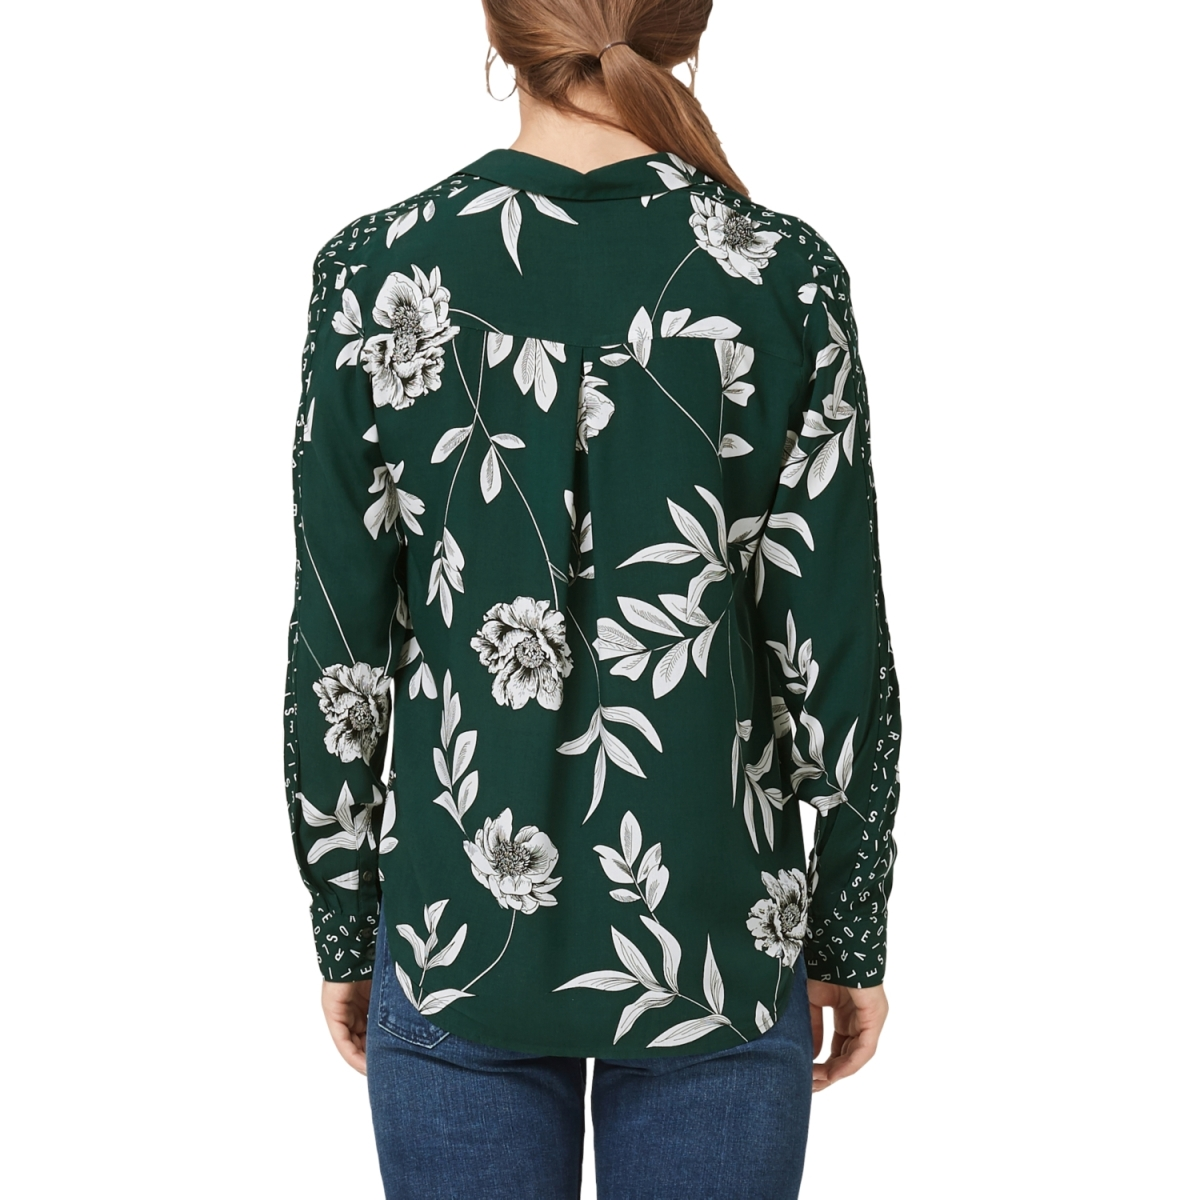 blouse met bloemmotief 14908112531 s.oliver blouse 78a6